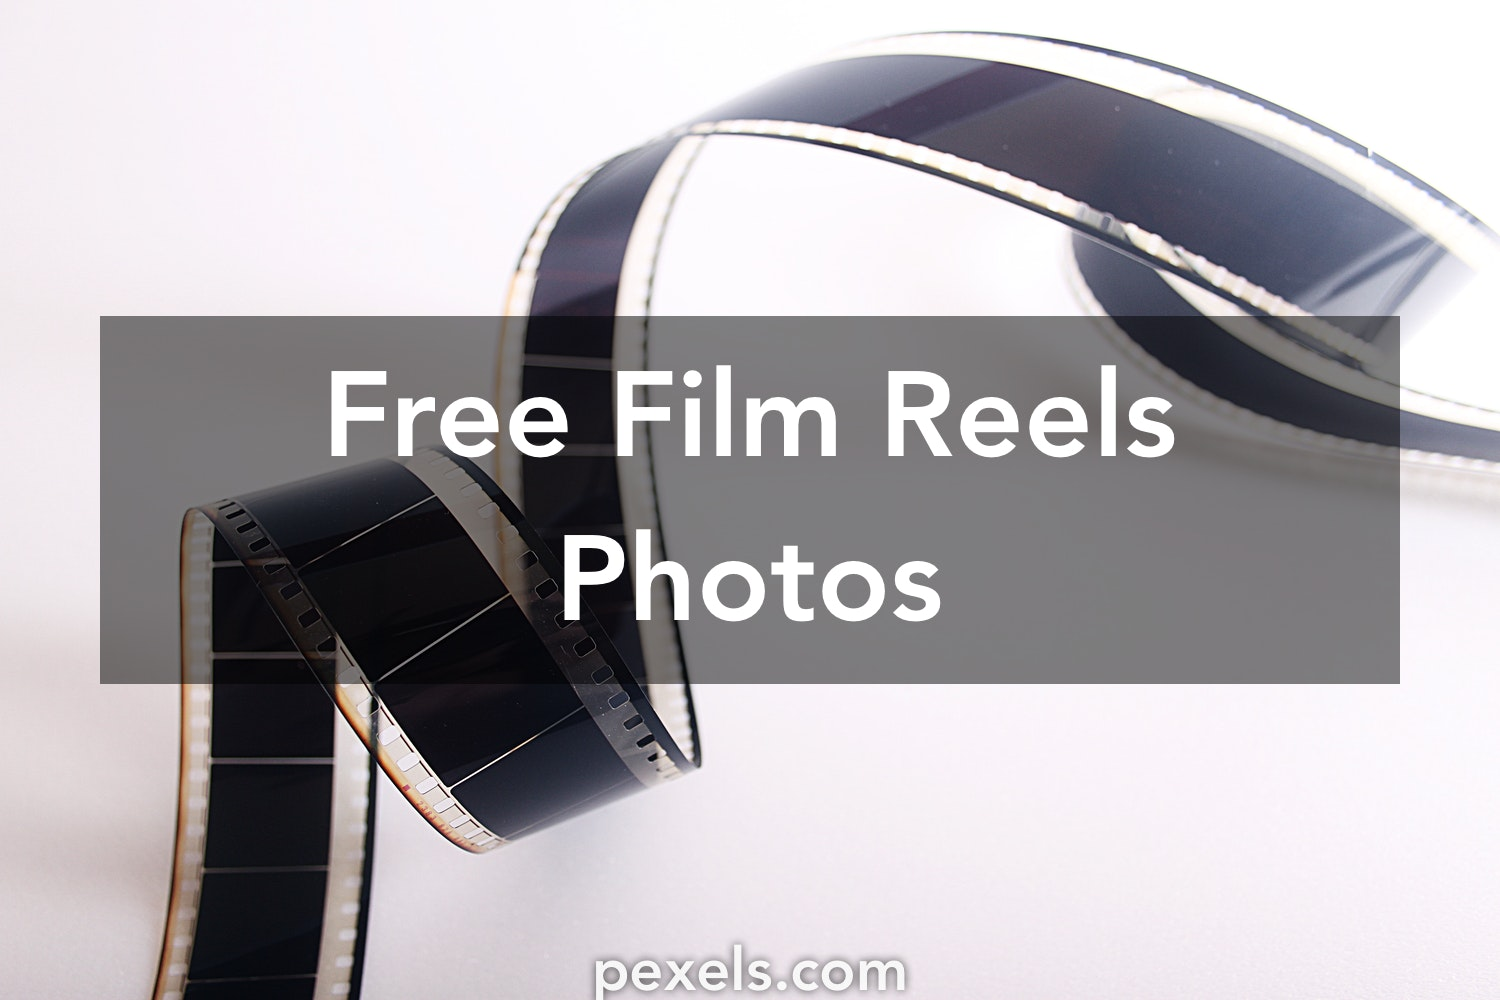 100 great film reels photos pexels free stock photos thecheapjerseys Choice Image